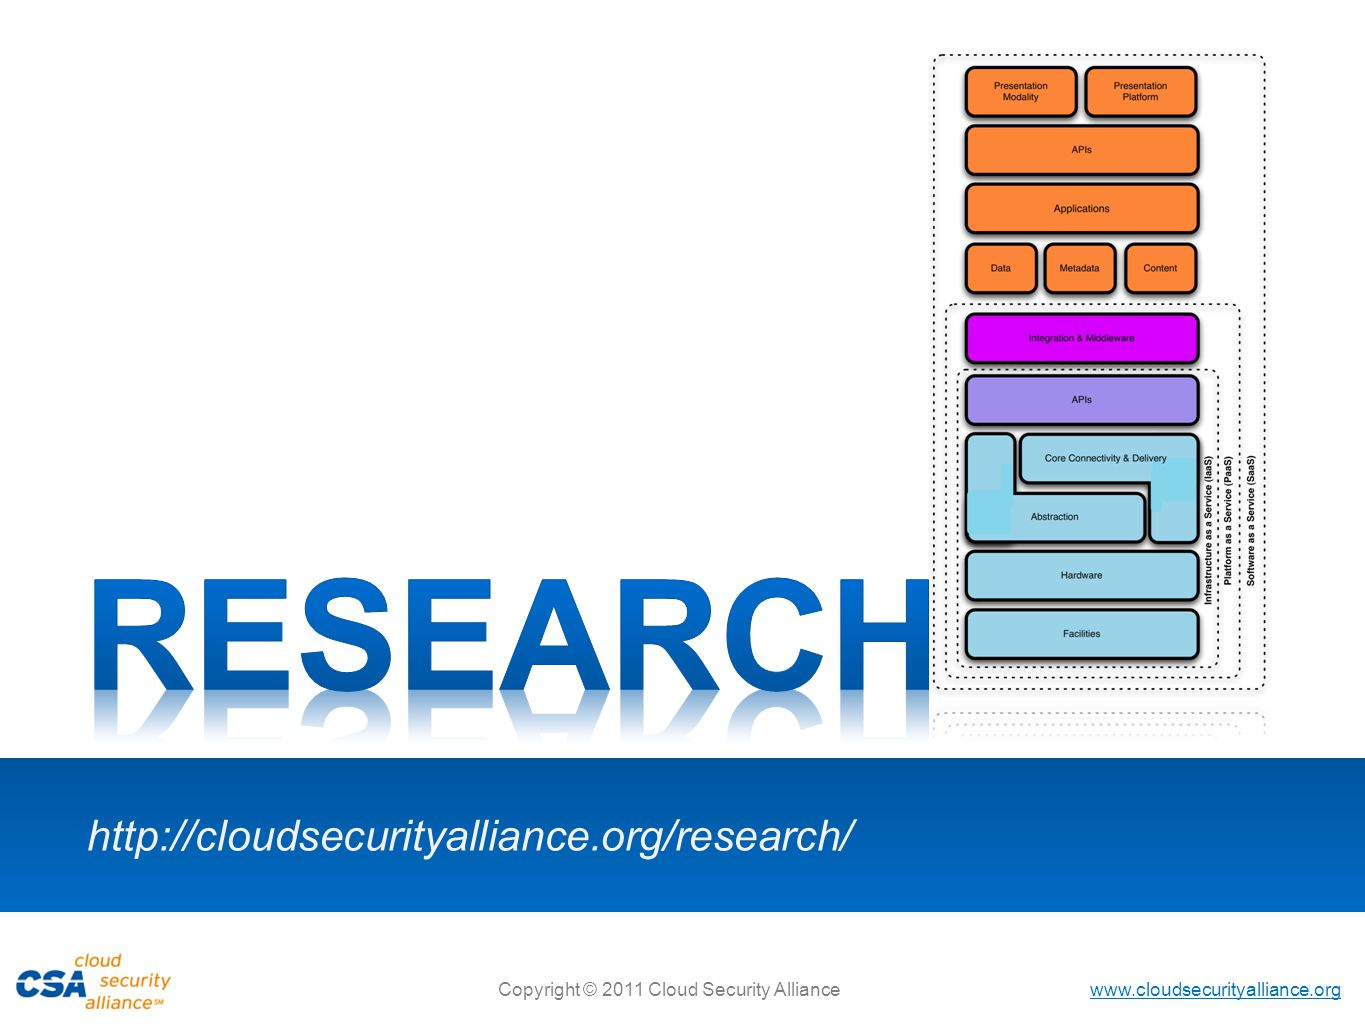 www.cloudsecurityalliance.org Copyright © 2011 Cloud Security Alliance www.cloudsecurityalliance.org Copyright © 2011 Cloud Security Alliance The CSA Projects will begin migrating to the new Basecamp found at the following URL: https://launchpad.37signals.com/ This site will give you access to all of your CSA projects on the new Basecamp and the pre-existing projects found in the renamed Basecamp Classic .